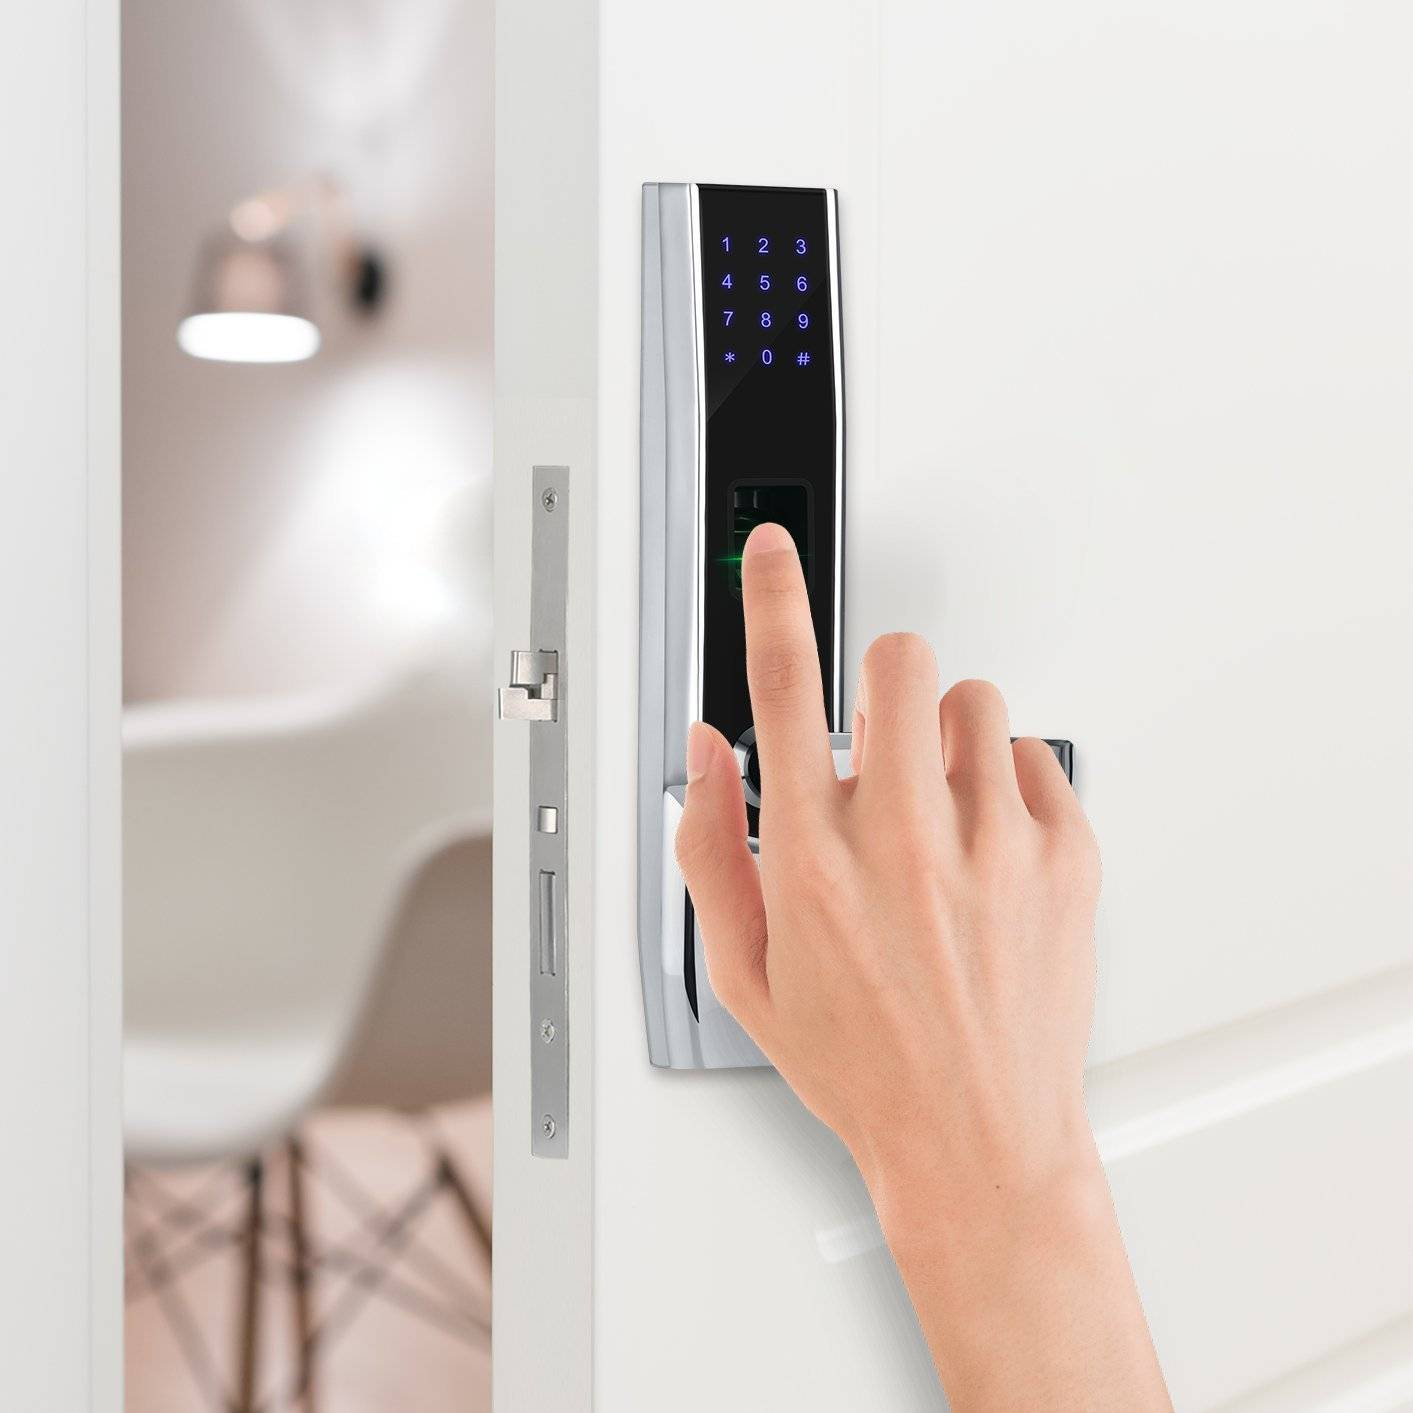 fingerprint smart lock can identify you quickly